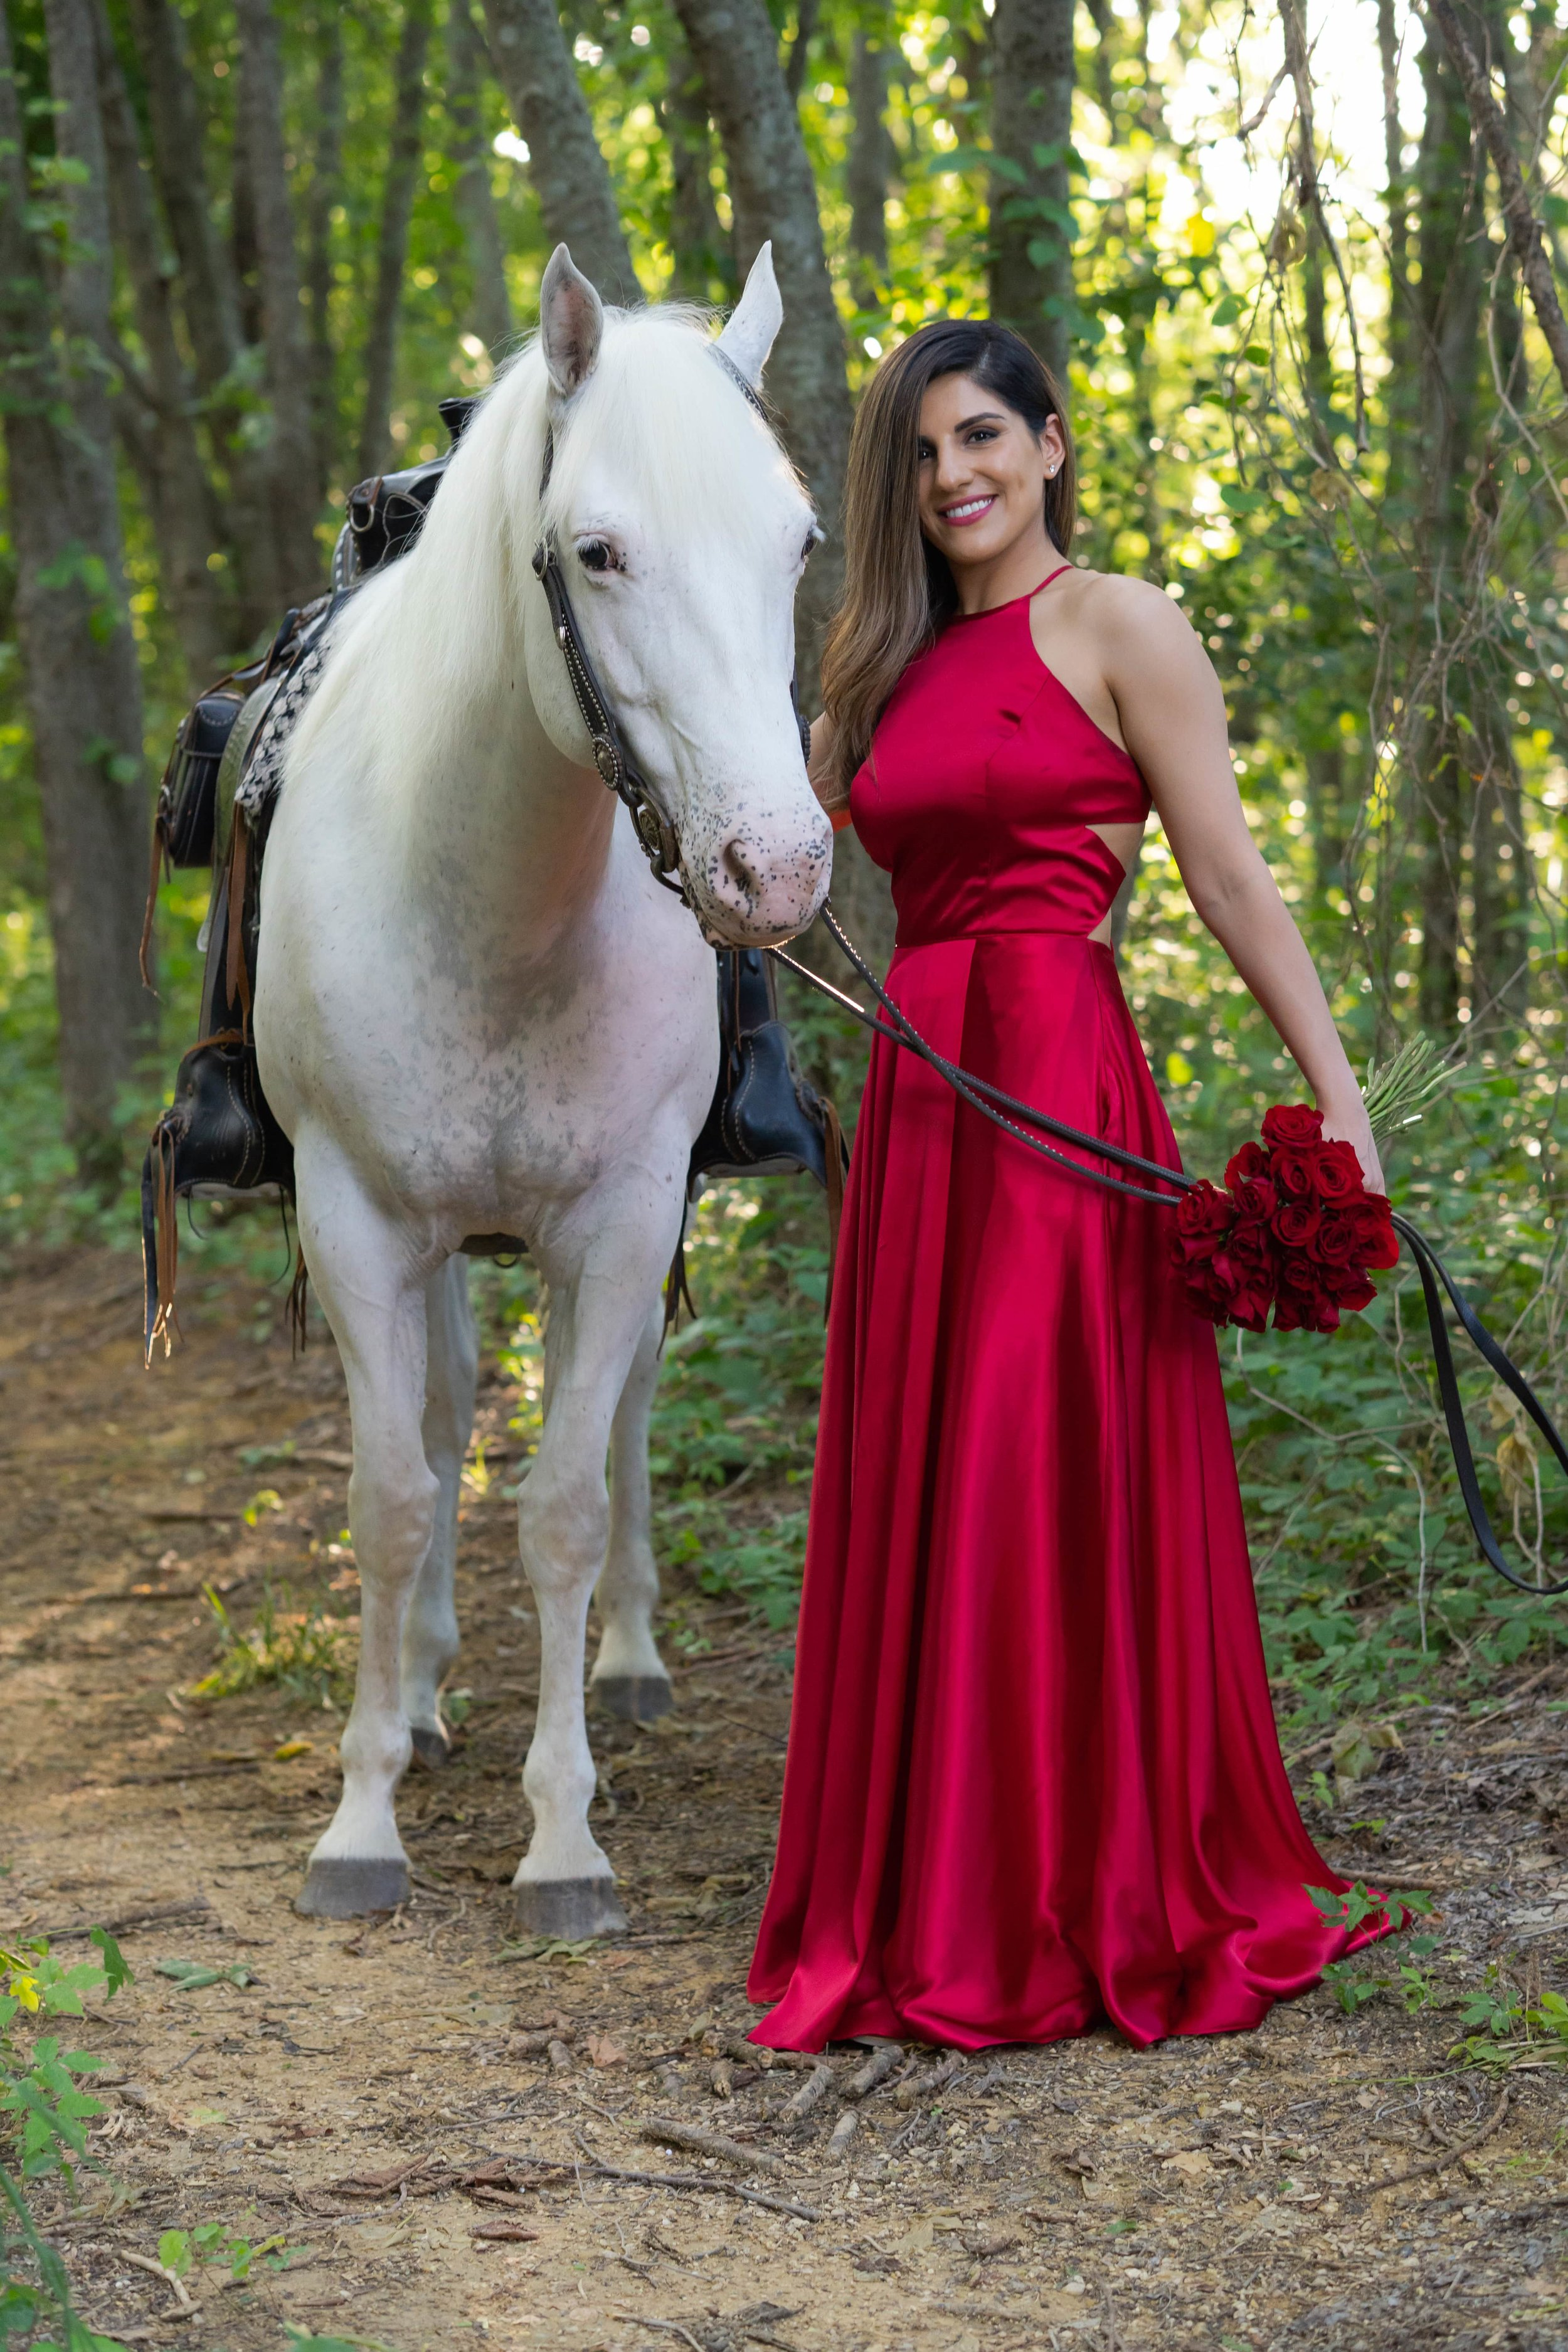 Engagement Photography Services Lucas, TX - Woman in red dress holding the reins of a white horse.